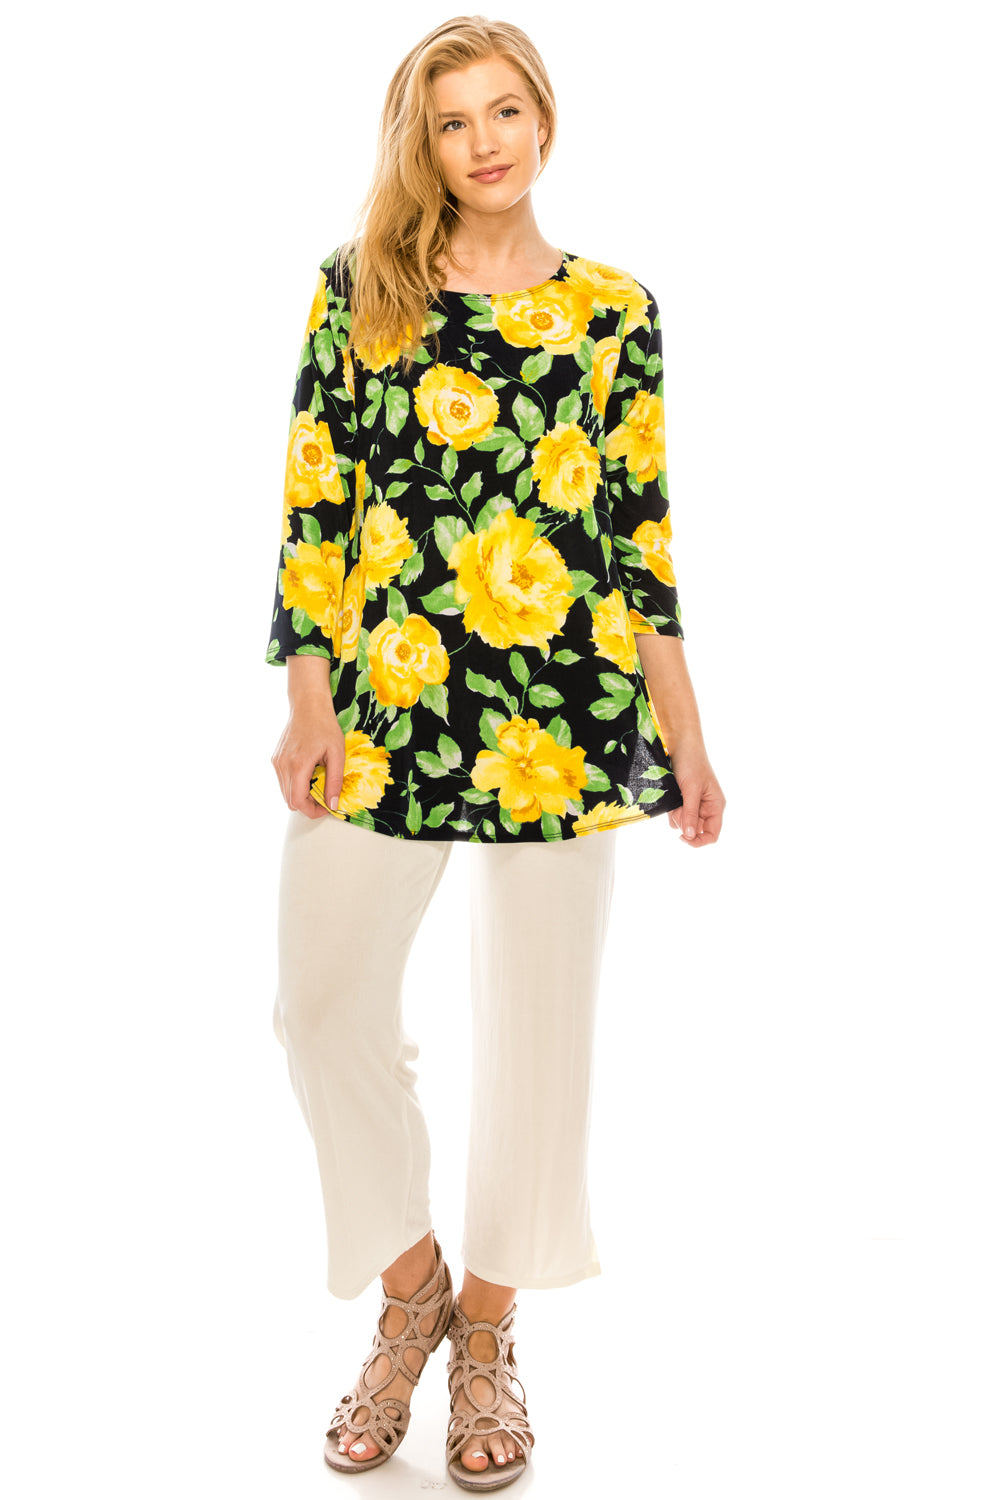 Jostar Women's Stretchy Rounded Bottom Tunic TopQuarter Sleeve Print Plus, 346BN-QXP-W020 - Jostar Online